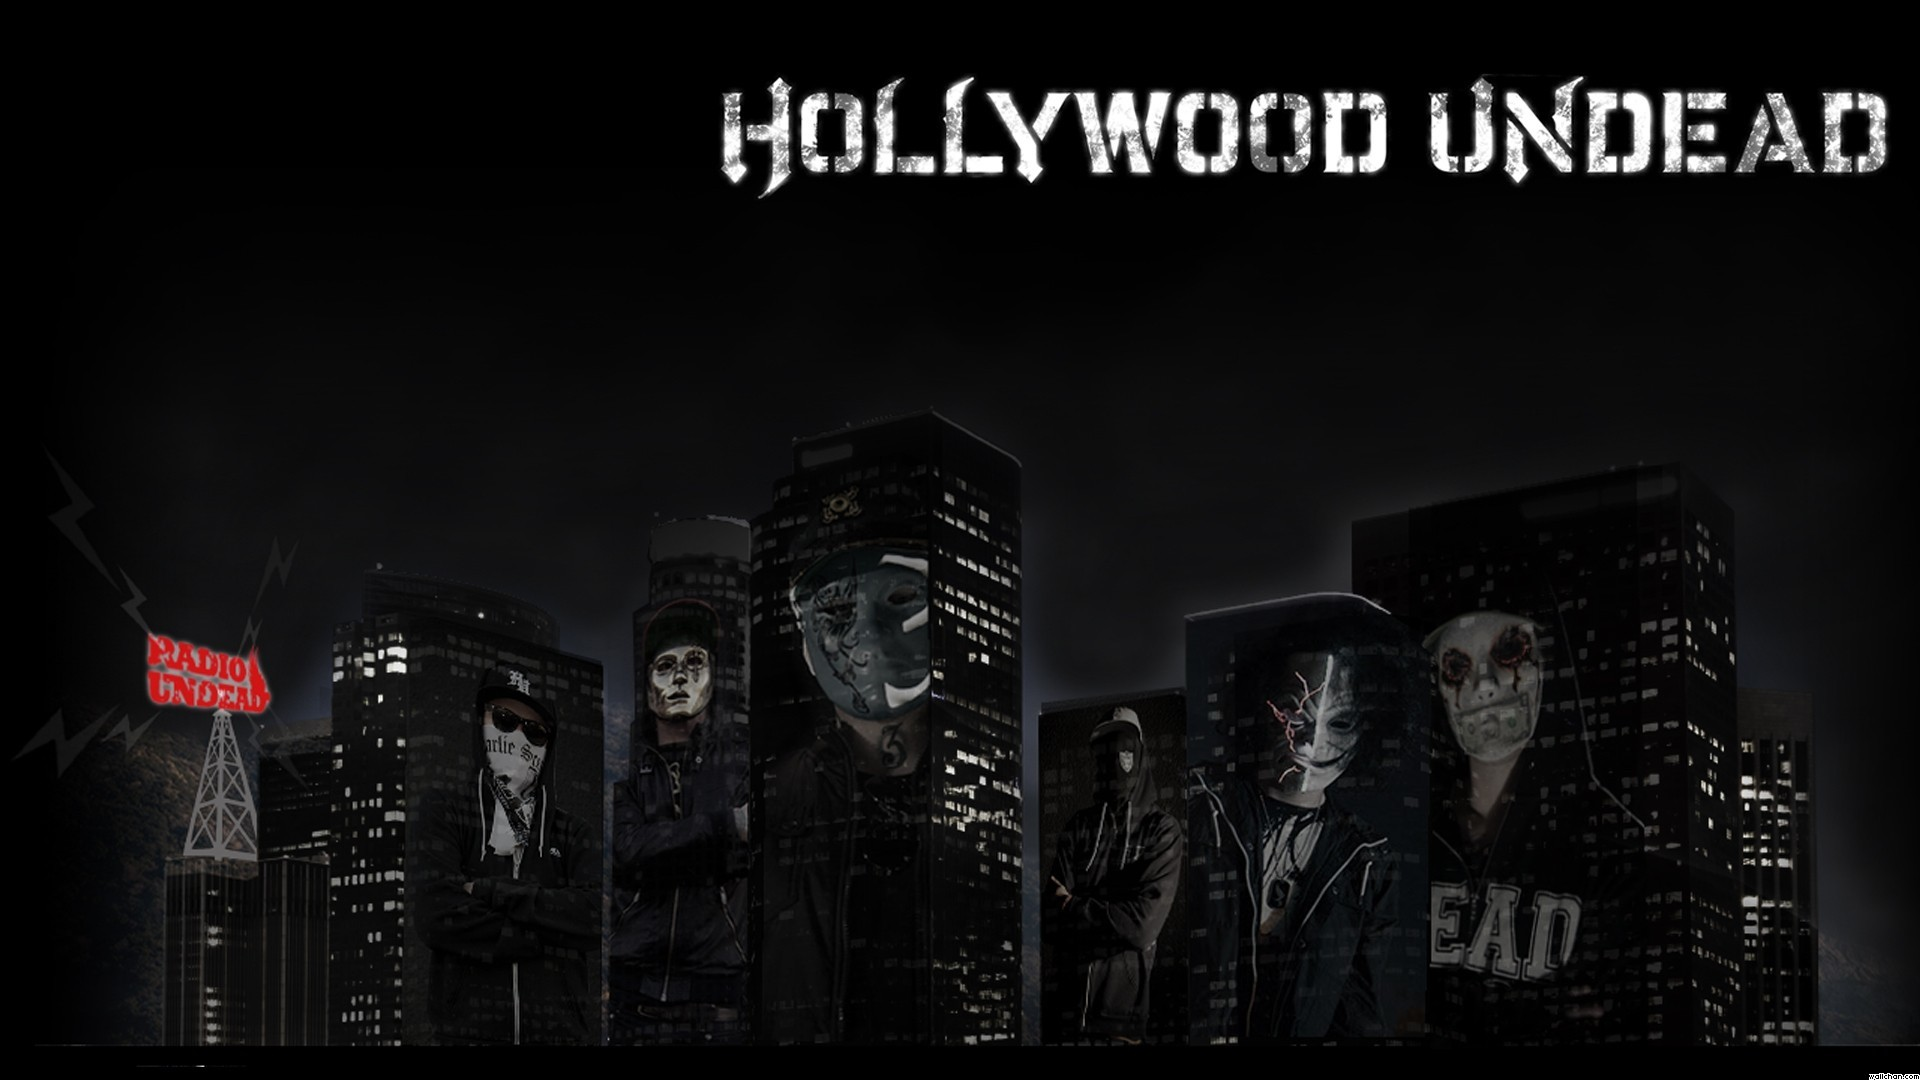 1920x1080 Wallpaper  Rock, Masks, Tshirts, Band, Hollywood, Undead .